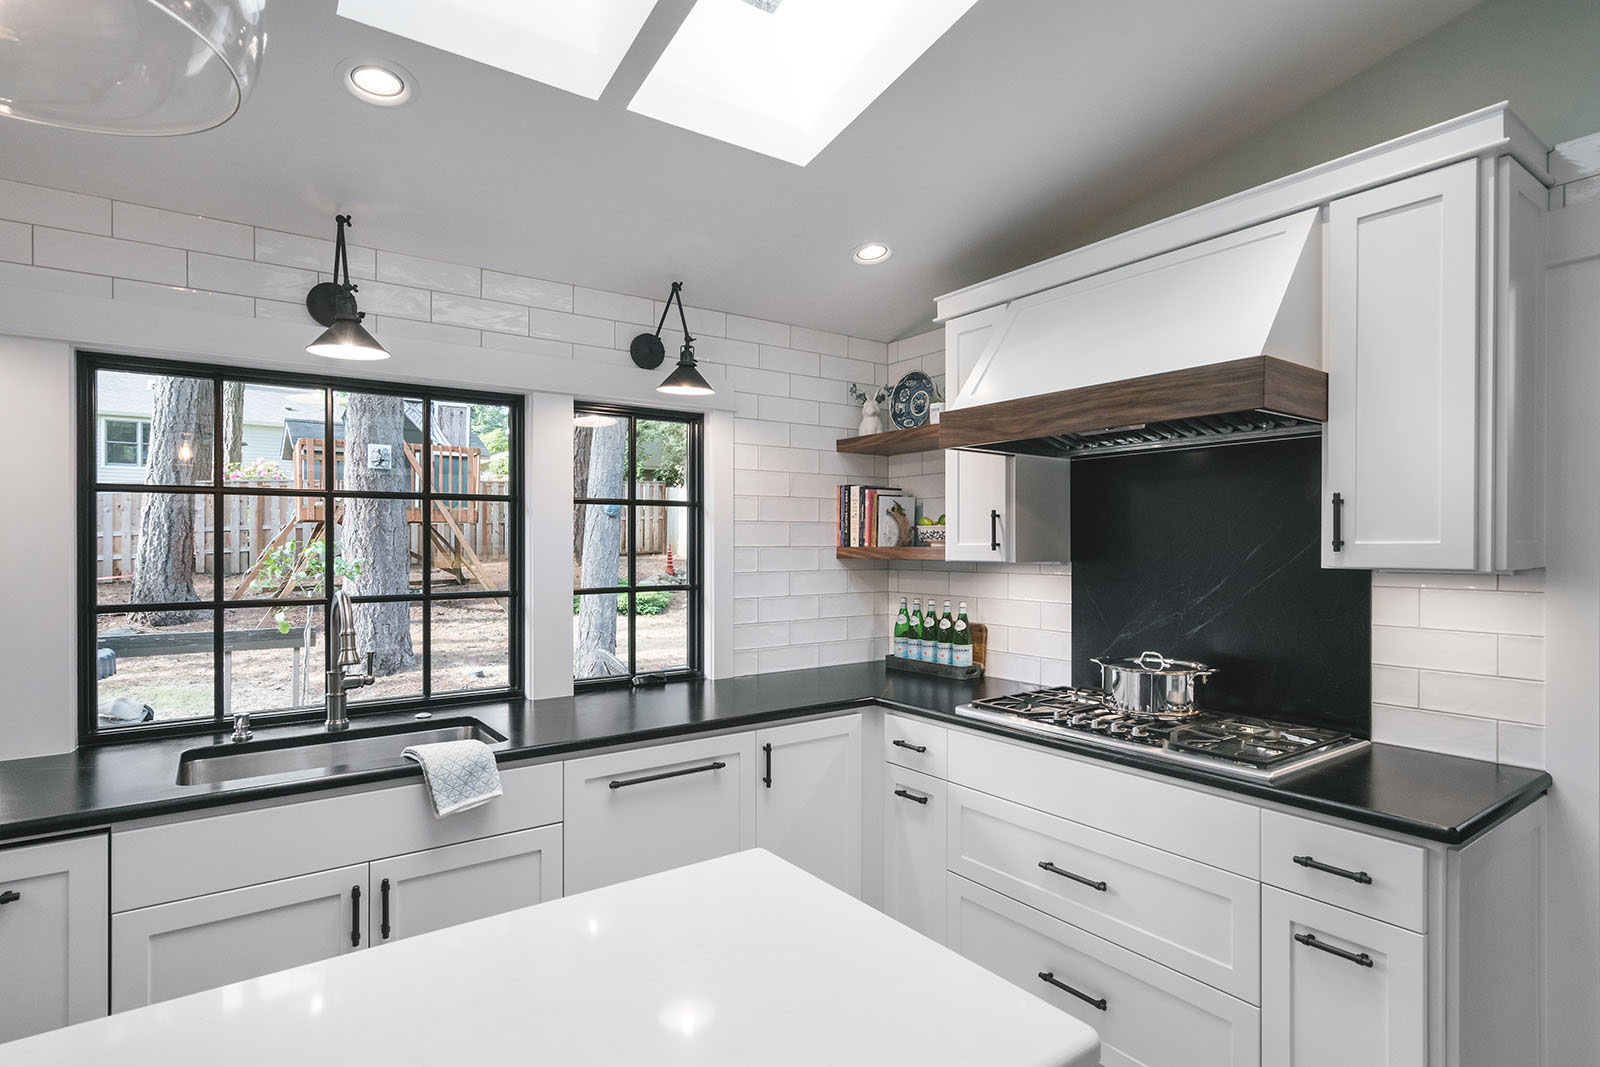 industrial kitchen design, home remodel - Henderer Design + Build, Corvallis OR